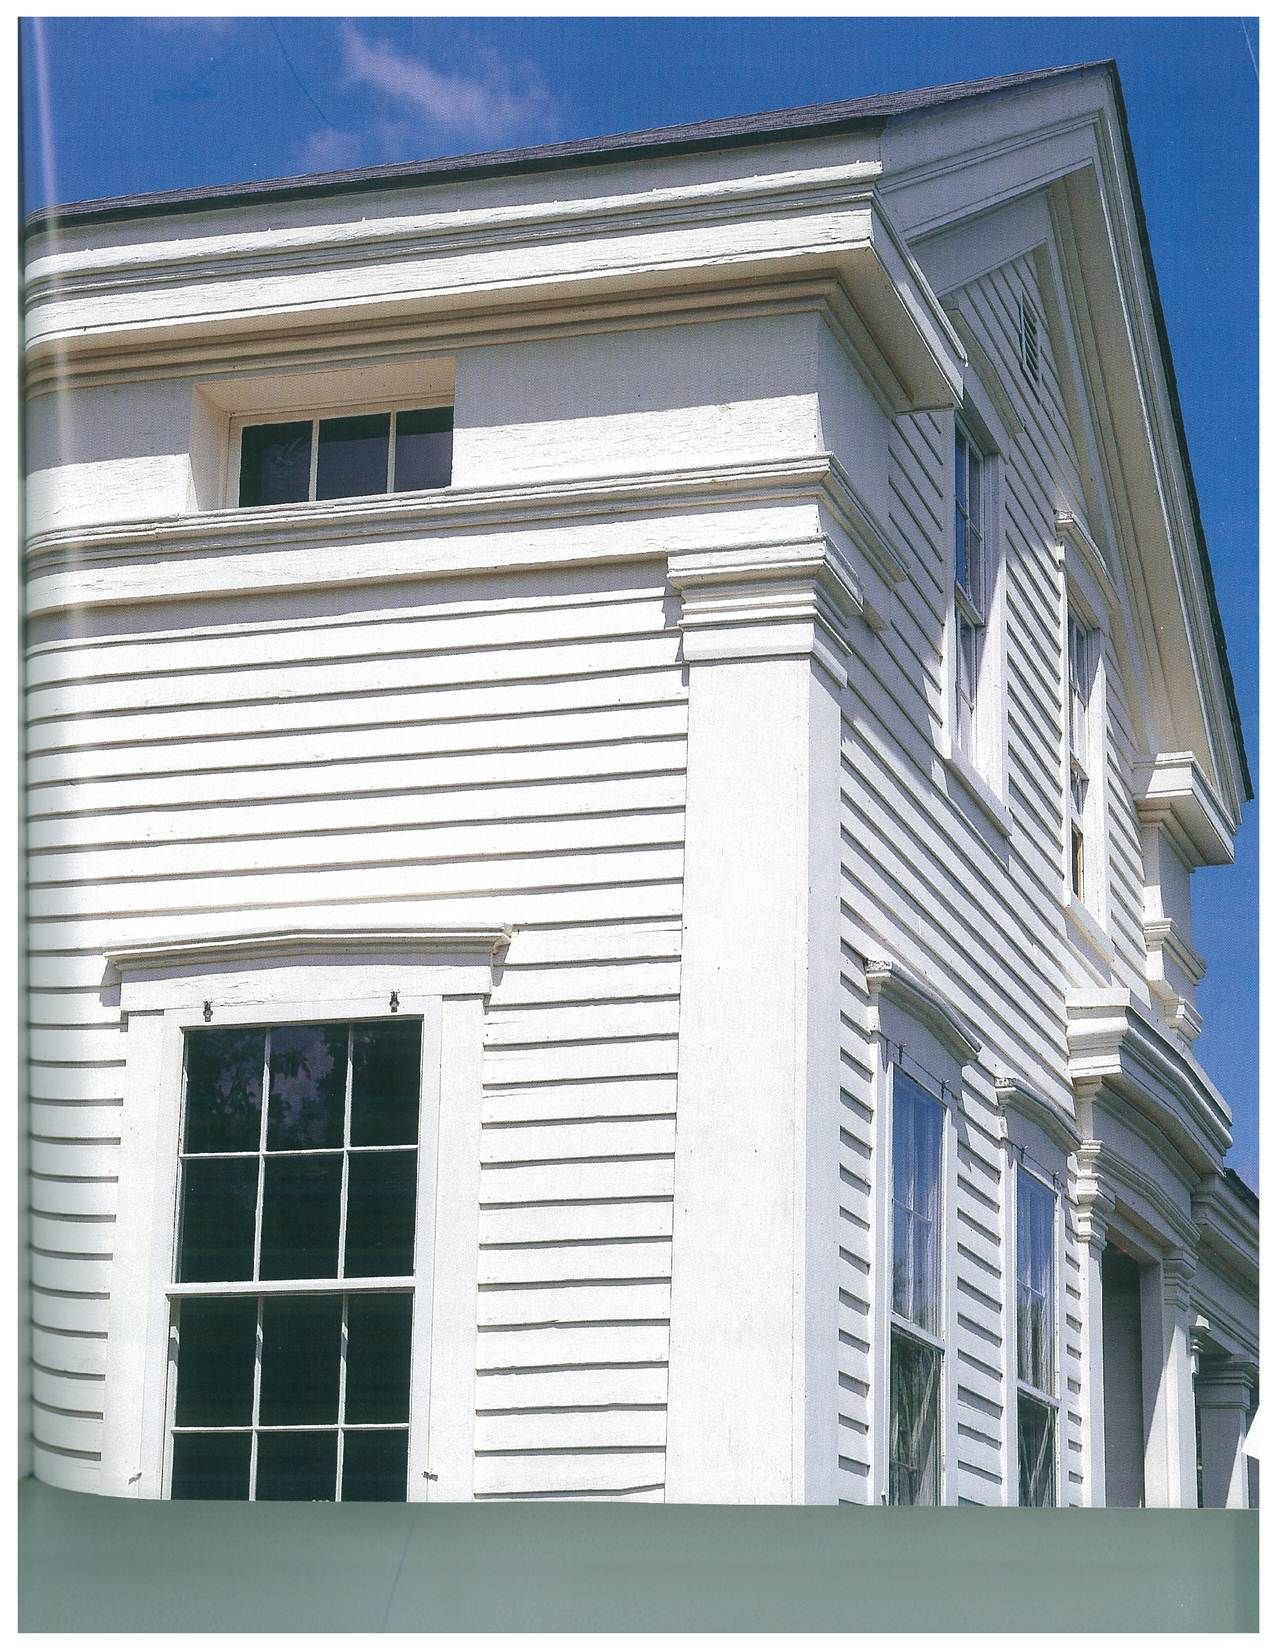 Exterior Cornice Trim And Windows In The Frieze Boards Colonial Trim Over The Windows Built Up He Greek Revival Home Greek Revival Architecture Greek Revival